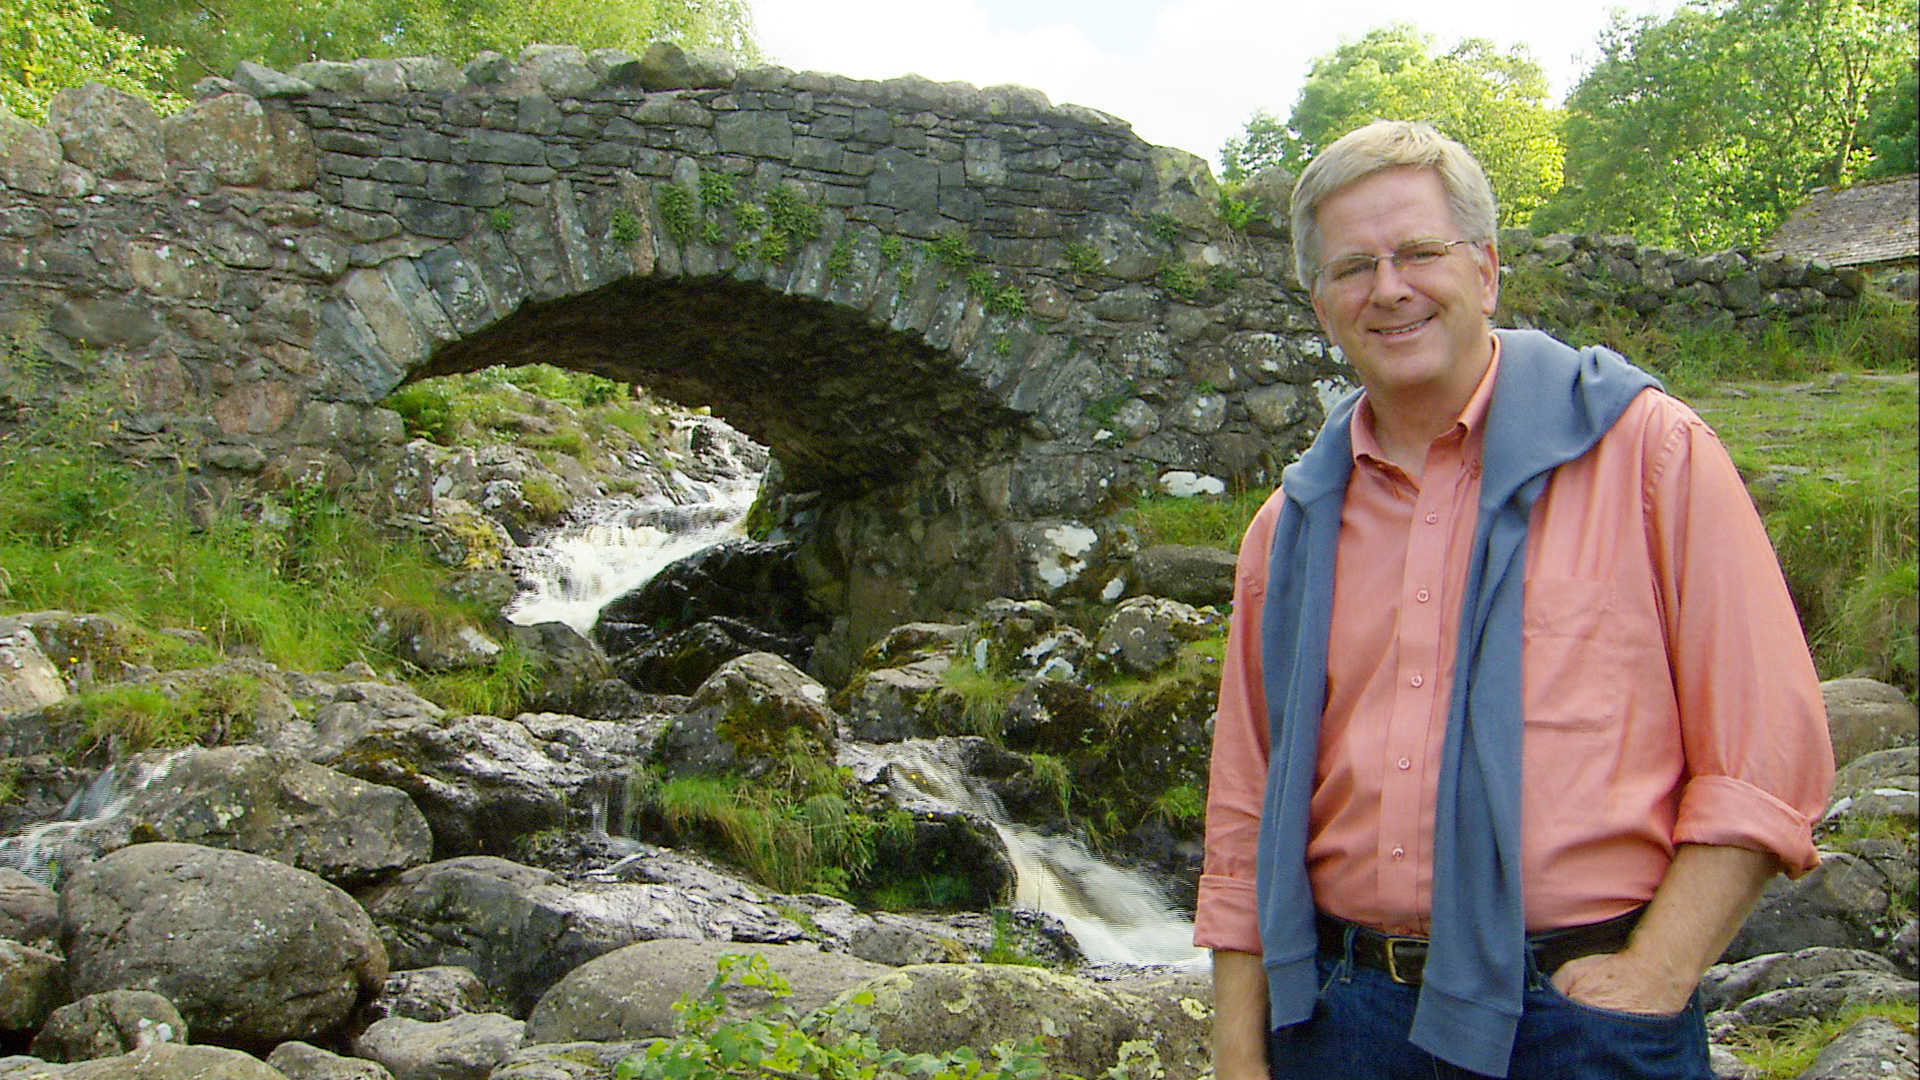 North England: Rick Steves at the Packhorse Bridge